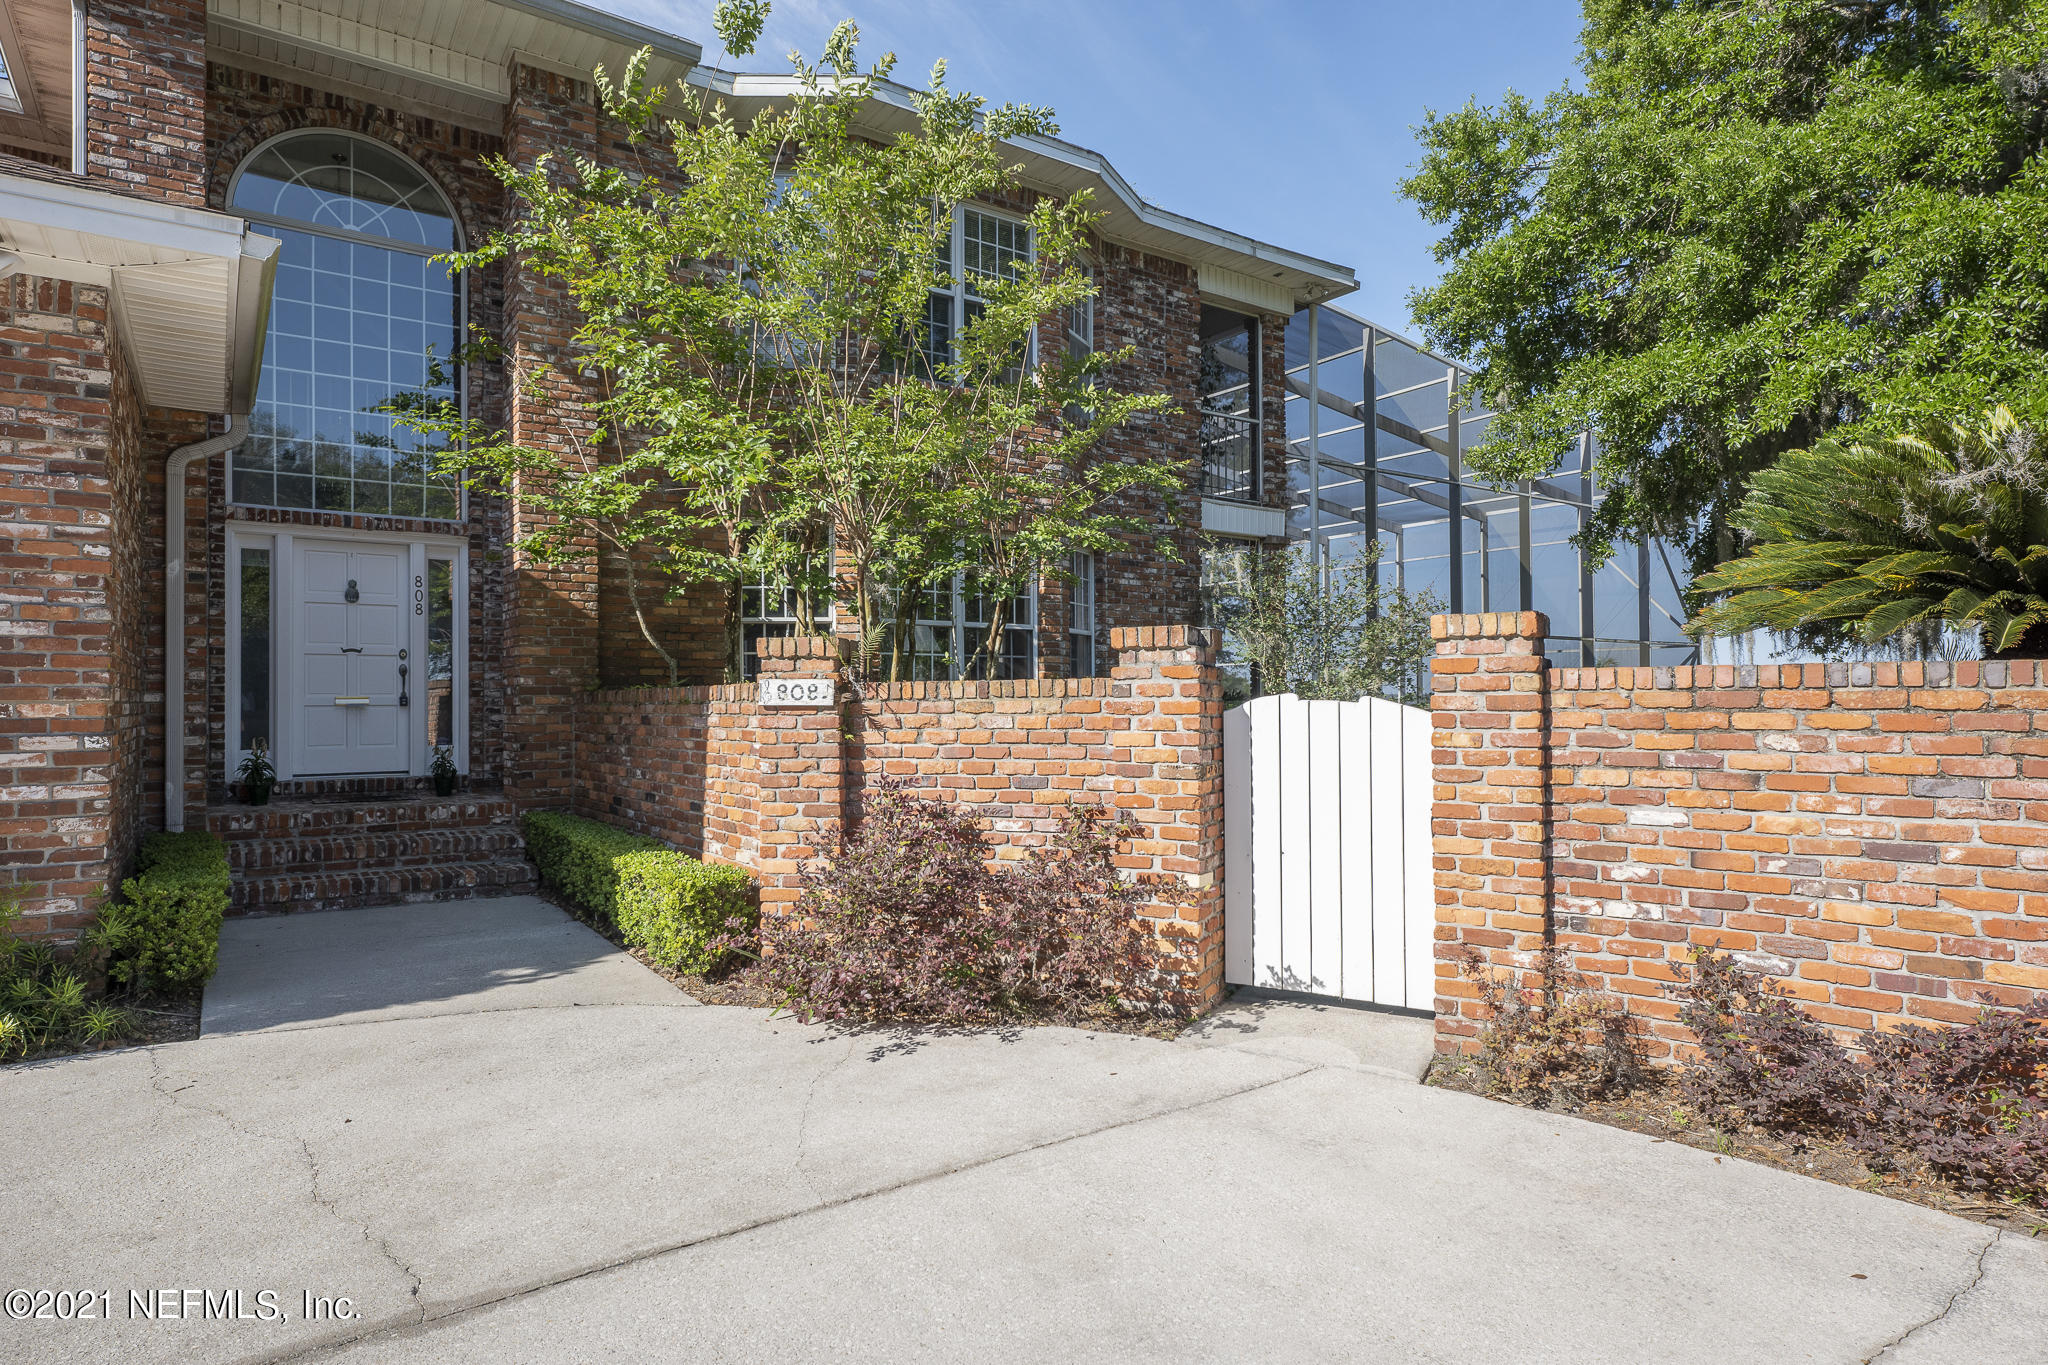 This 1990 brick-built riverfront 4 bed, 5 bath 5300+ SF home comes with its own dock, boatlift, and boathouse on .49 acres in prestigious South San Marco. This home was Custom built but fits into 2021's modern floorplan. Open flow and great for entertaining. Every bedroom in this executive home has an en-suite bathroom. Open all the doors to enjoy the view from the living area across the pool to the St. Johns River, even when sitting in your indoor hot tub near the exit to the enclosed pool deck, MUST SEE to believe. Sit at your boathouse and watch the sun set. Owner's Suite comes equipped with a wet bar and fireplace. The guest and owner's suite share a balcony overlooking the pool and the multi-million-dollar view of the river. Everything about the house is set up for entertaining. The yard can easily host birthday parties, weddings, graduations or anything you want to celebrate. On one side of the home you can enjoy a private garden area and on the other a large private locked shed. Remember to check out the oversized three car garage. Roof was replaced in 2013 and the home already has newer AC units. This home has Immaculately cared for, you can do some cosmetic changes to the home and make it a family treasure for decades.